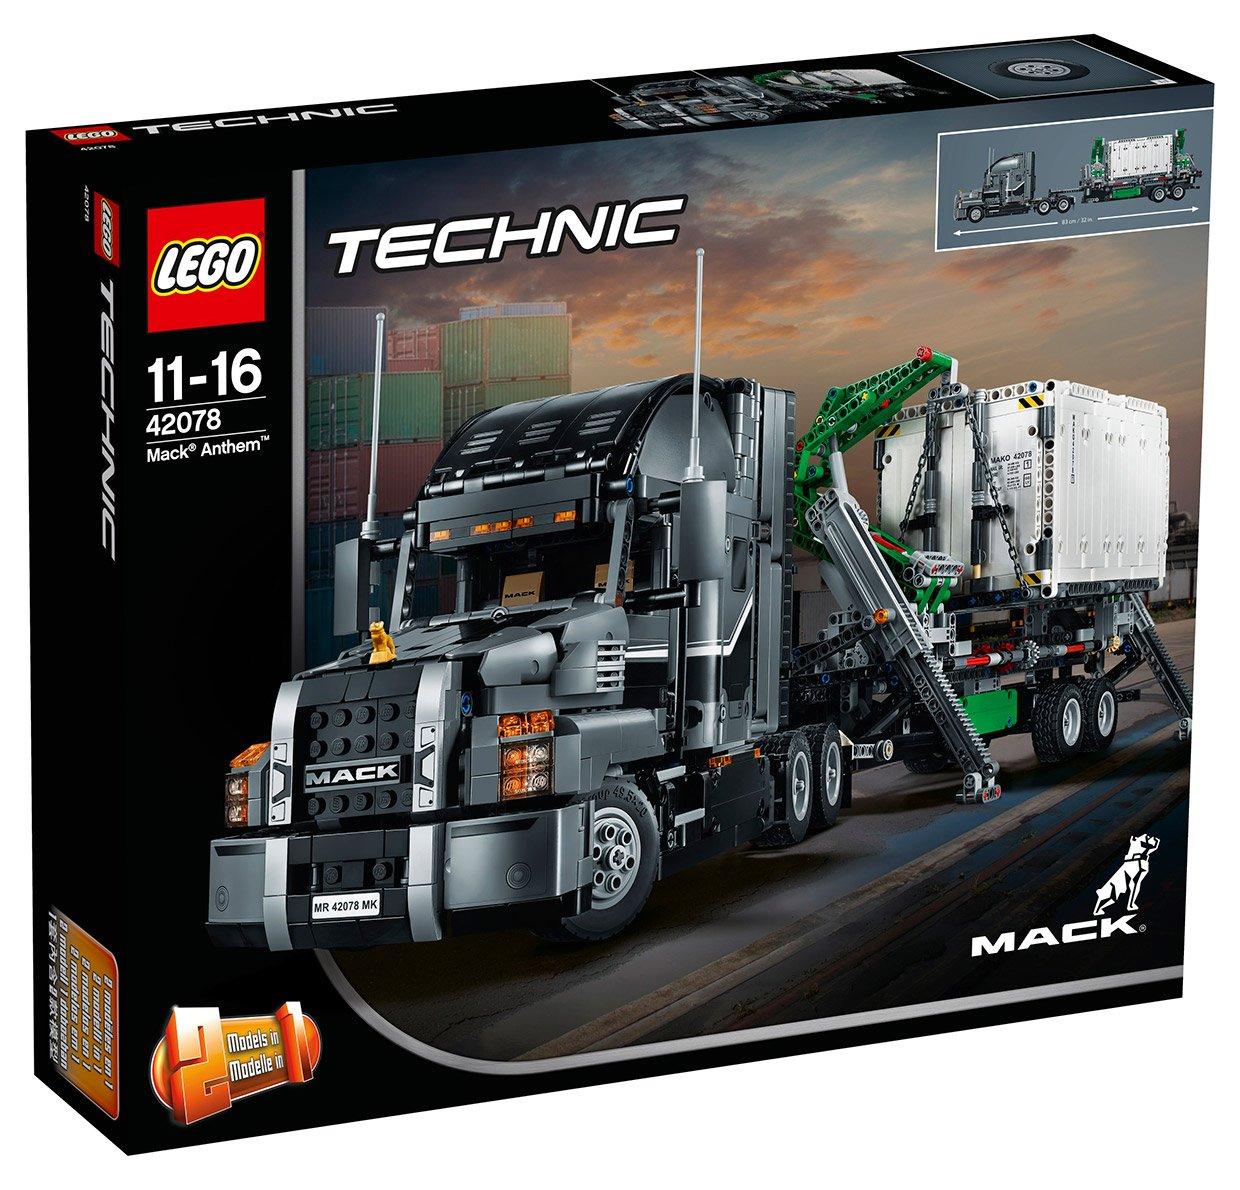 Luxury Tech Gifts Lego Technic Mack Anthem